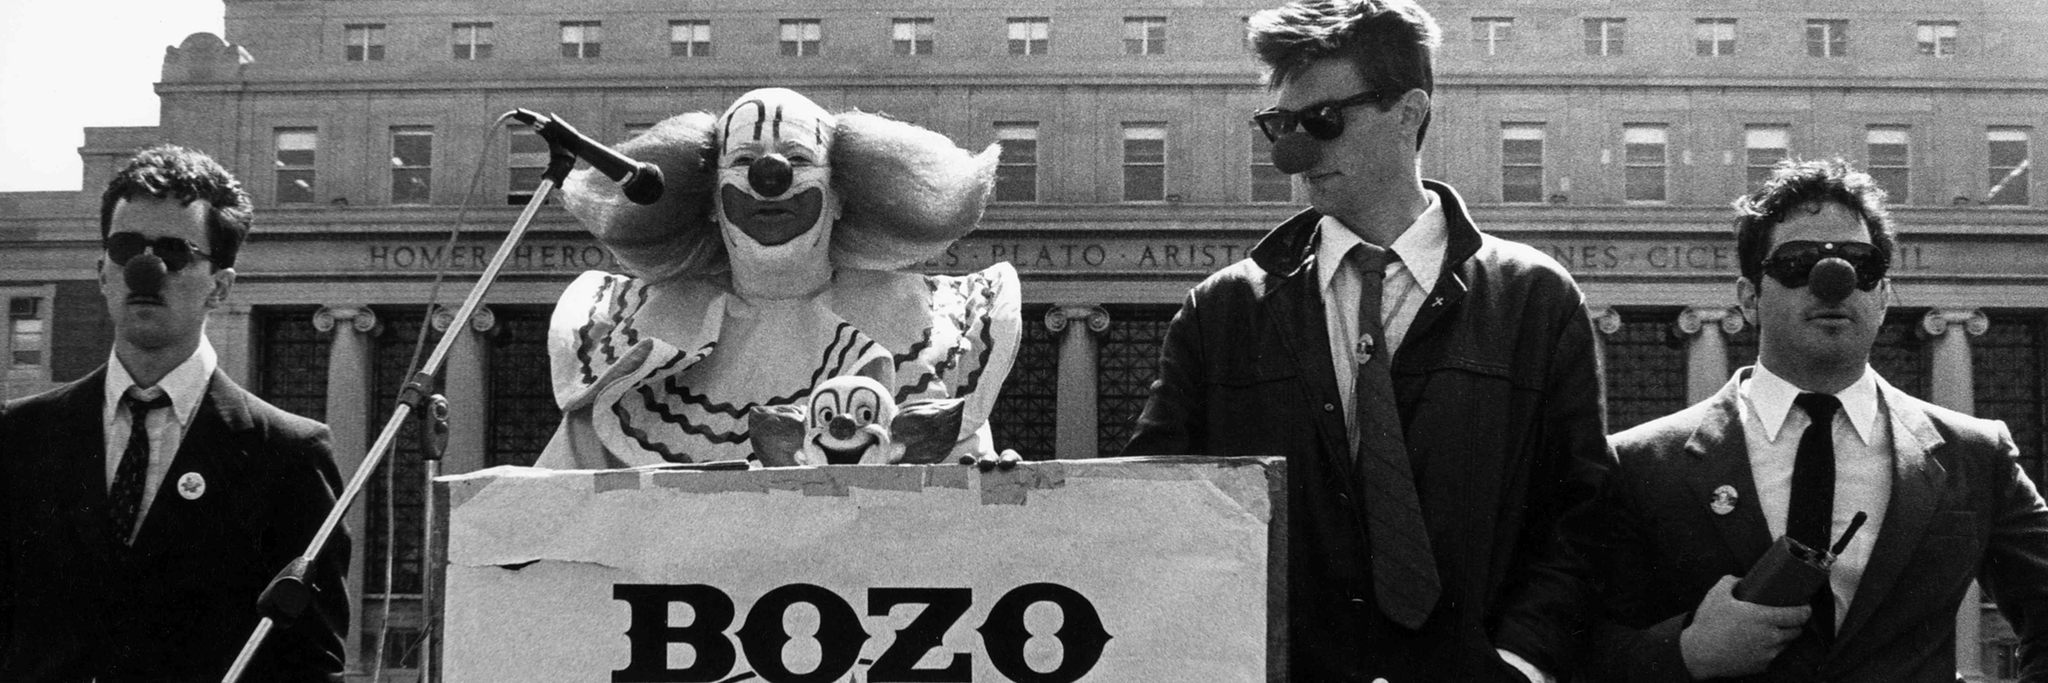 1984 Bozo For President Rally at Columbia